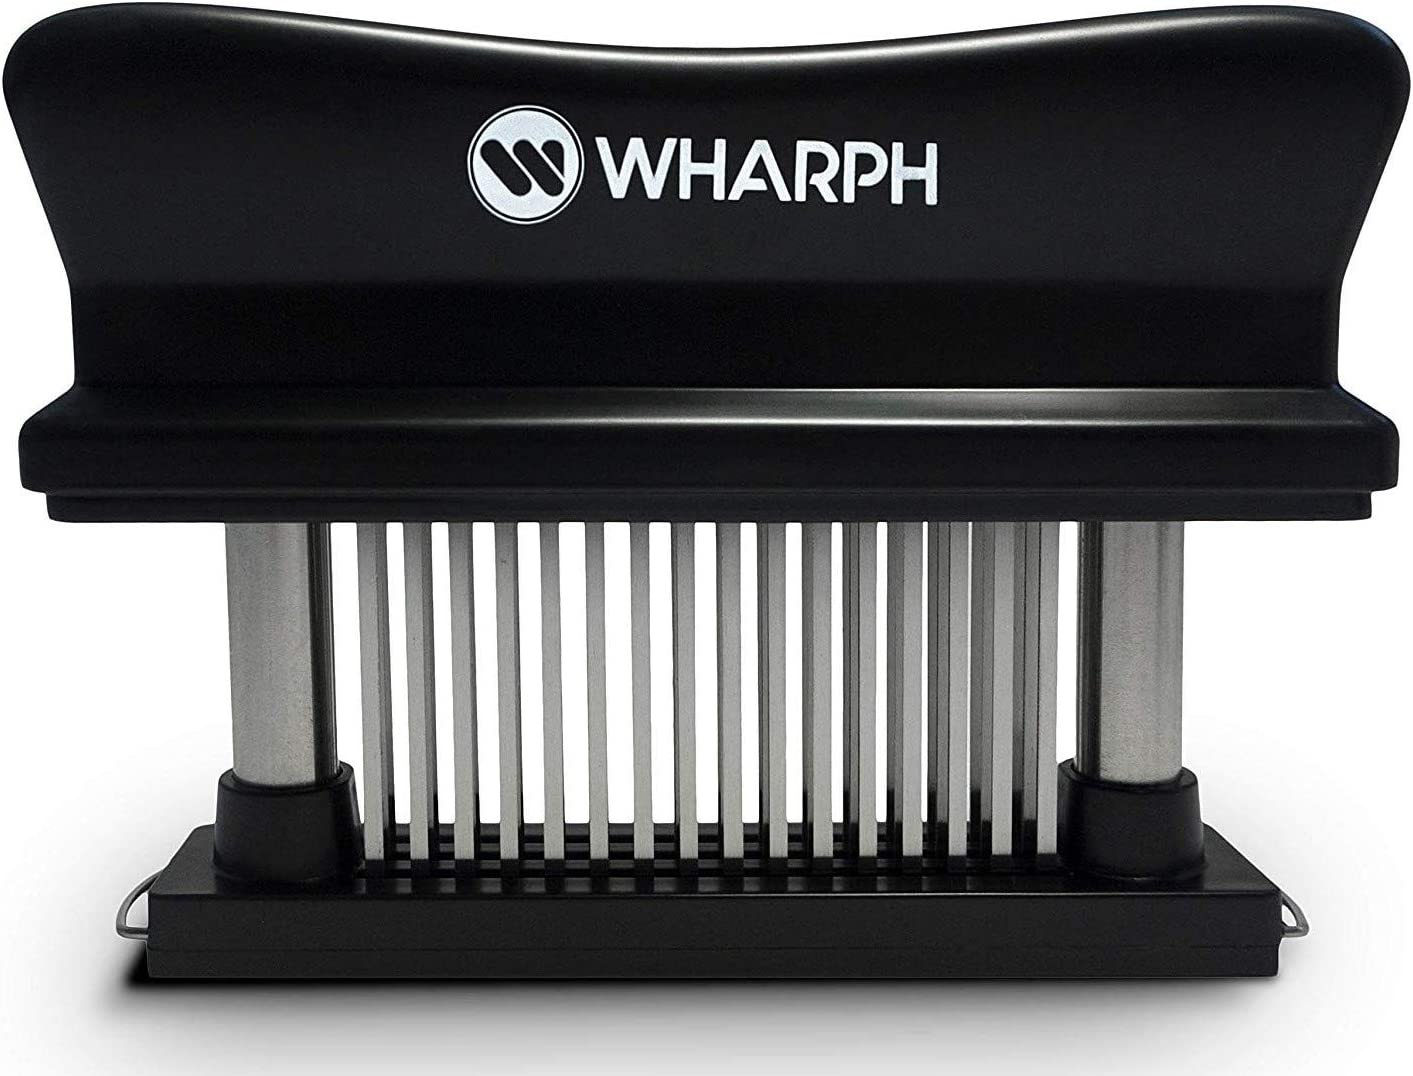 WHARPH Premium Meat Tenderizer - Manual Heavy All stores are sold Hand Held Duty Max 86% OFF and